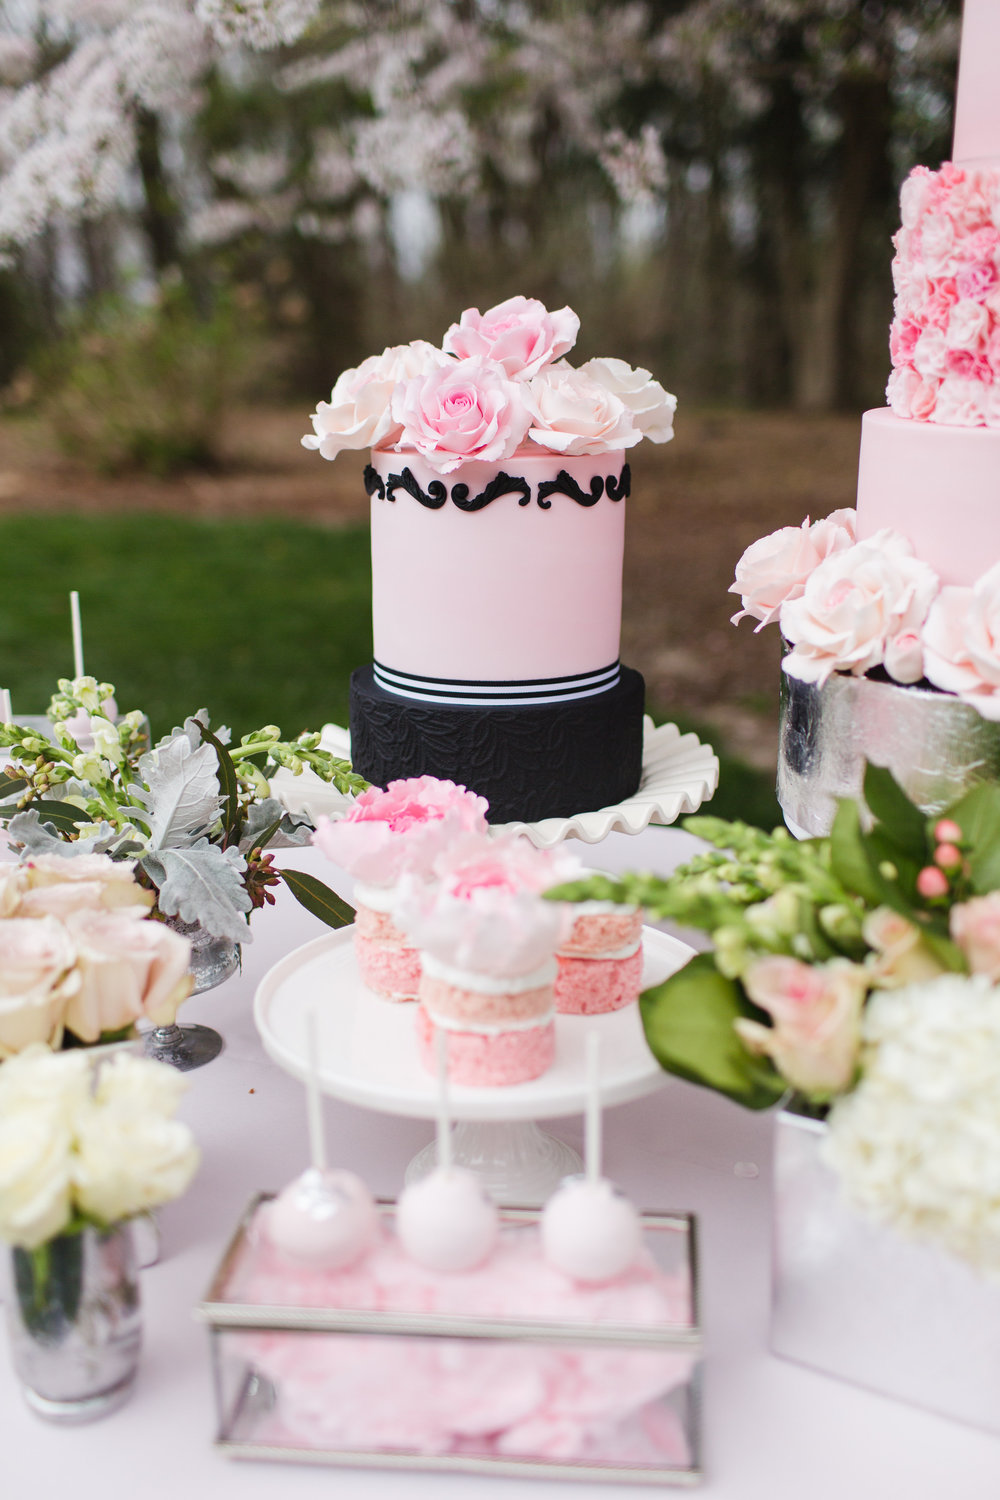 Cakes and Sweets-0109.jpg